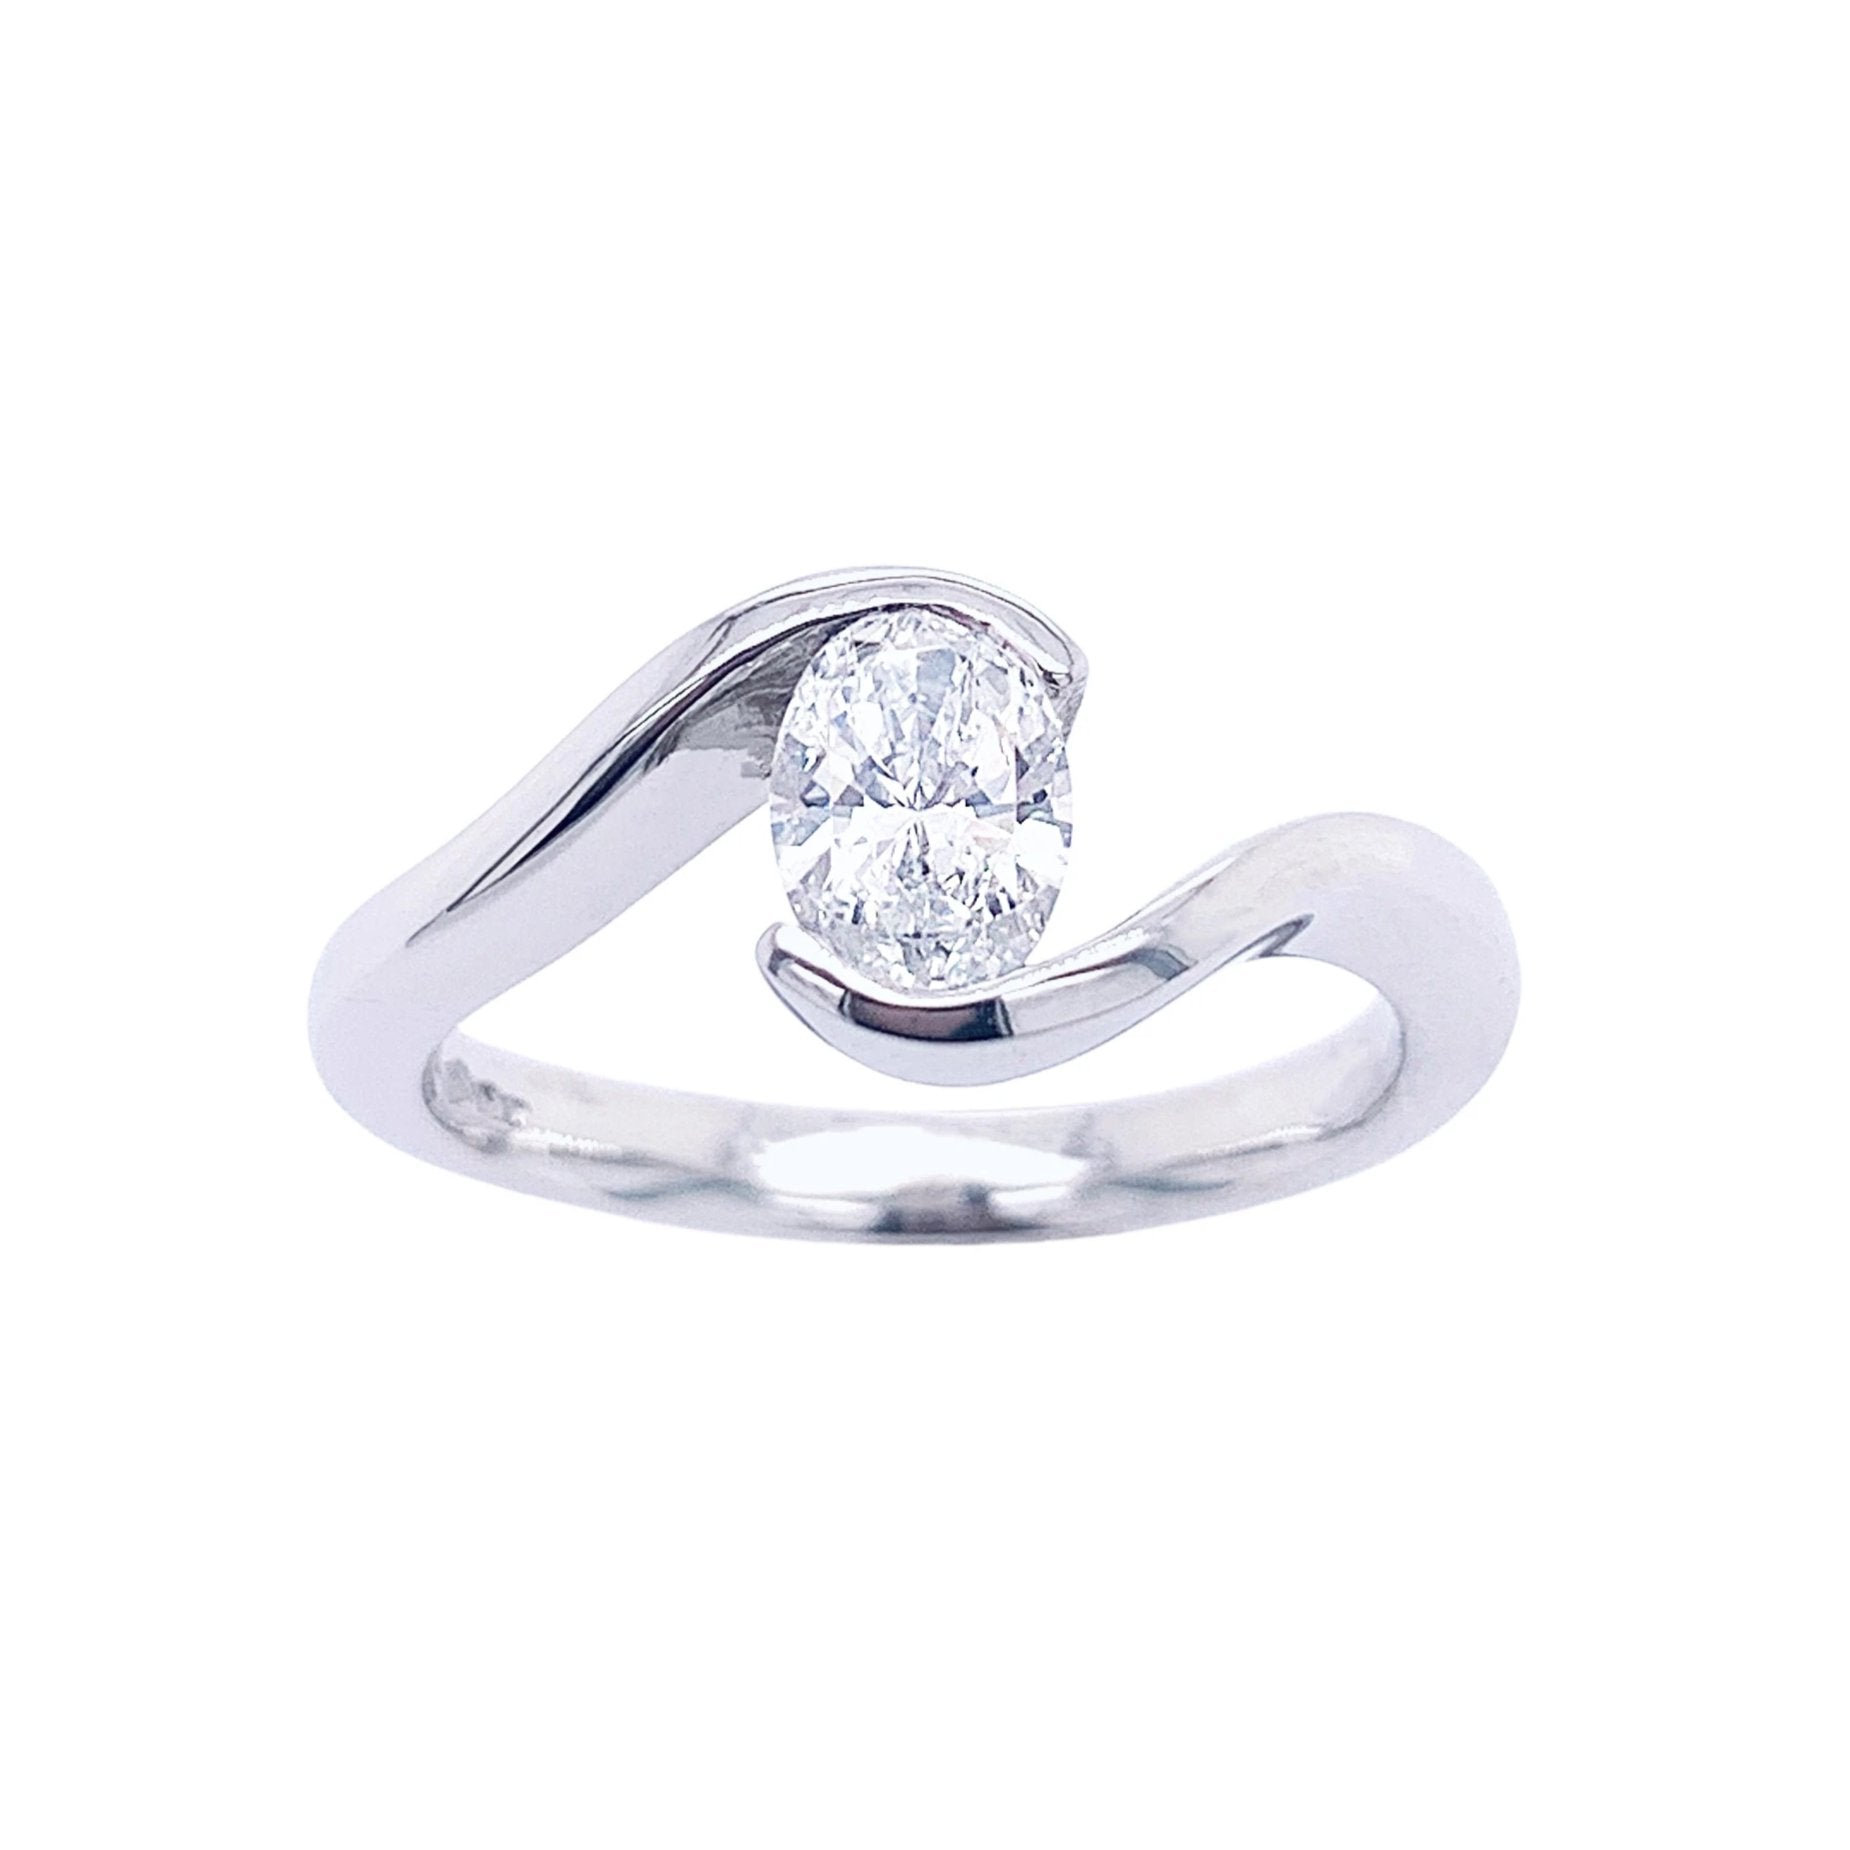 Platinum Wrap-around Oval-cut Diamond Ring - Andrew Scott